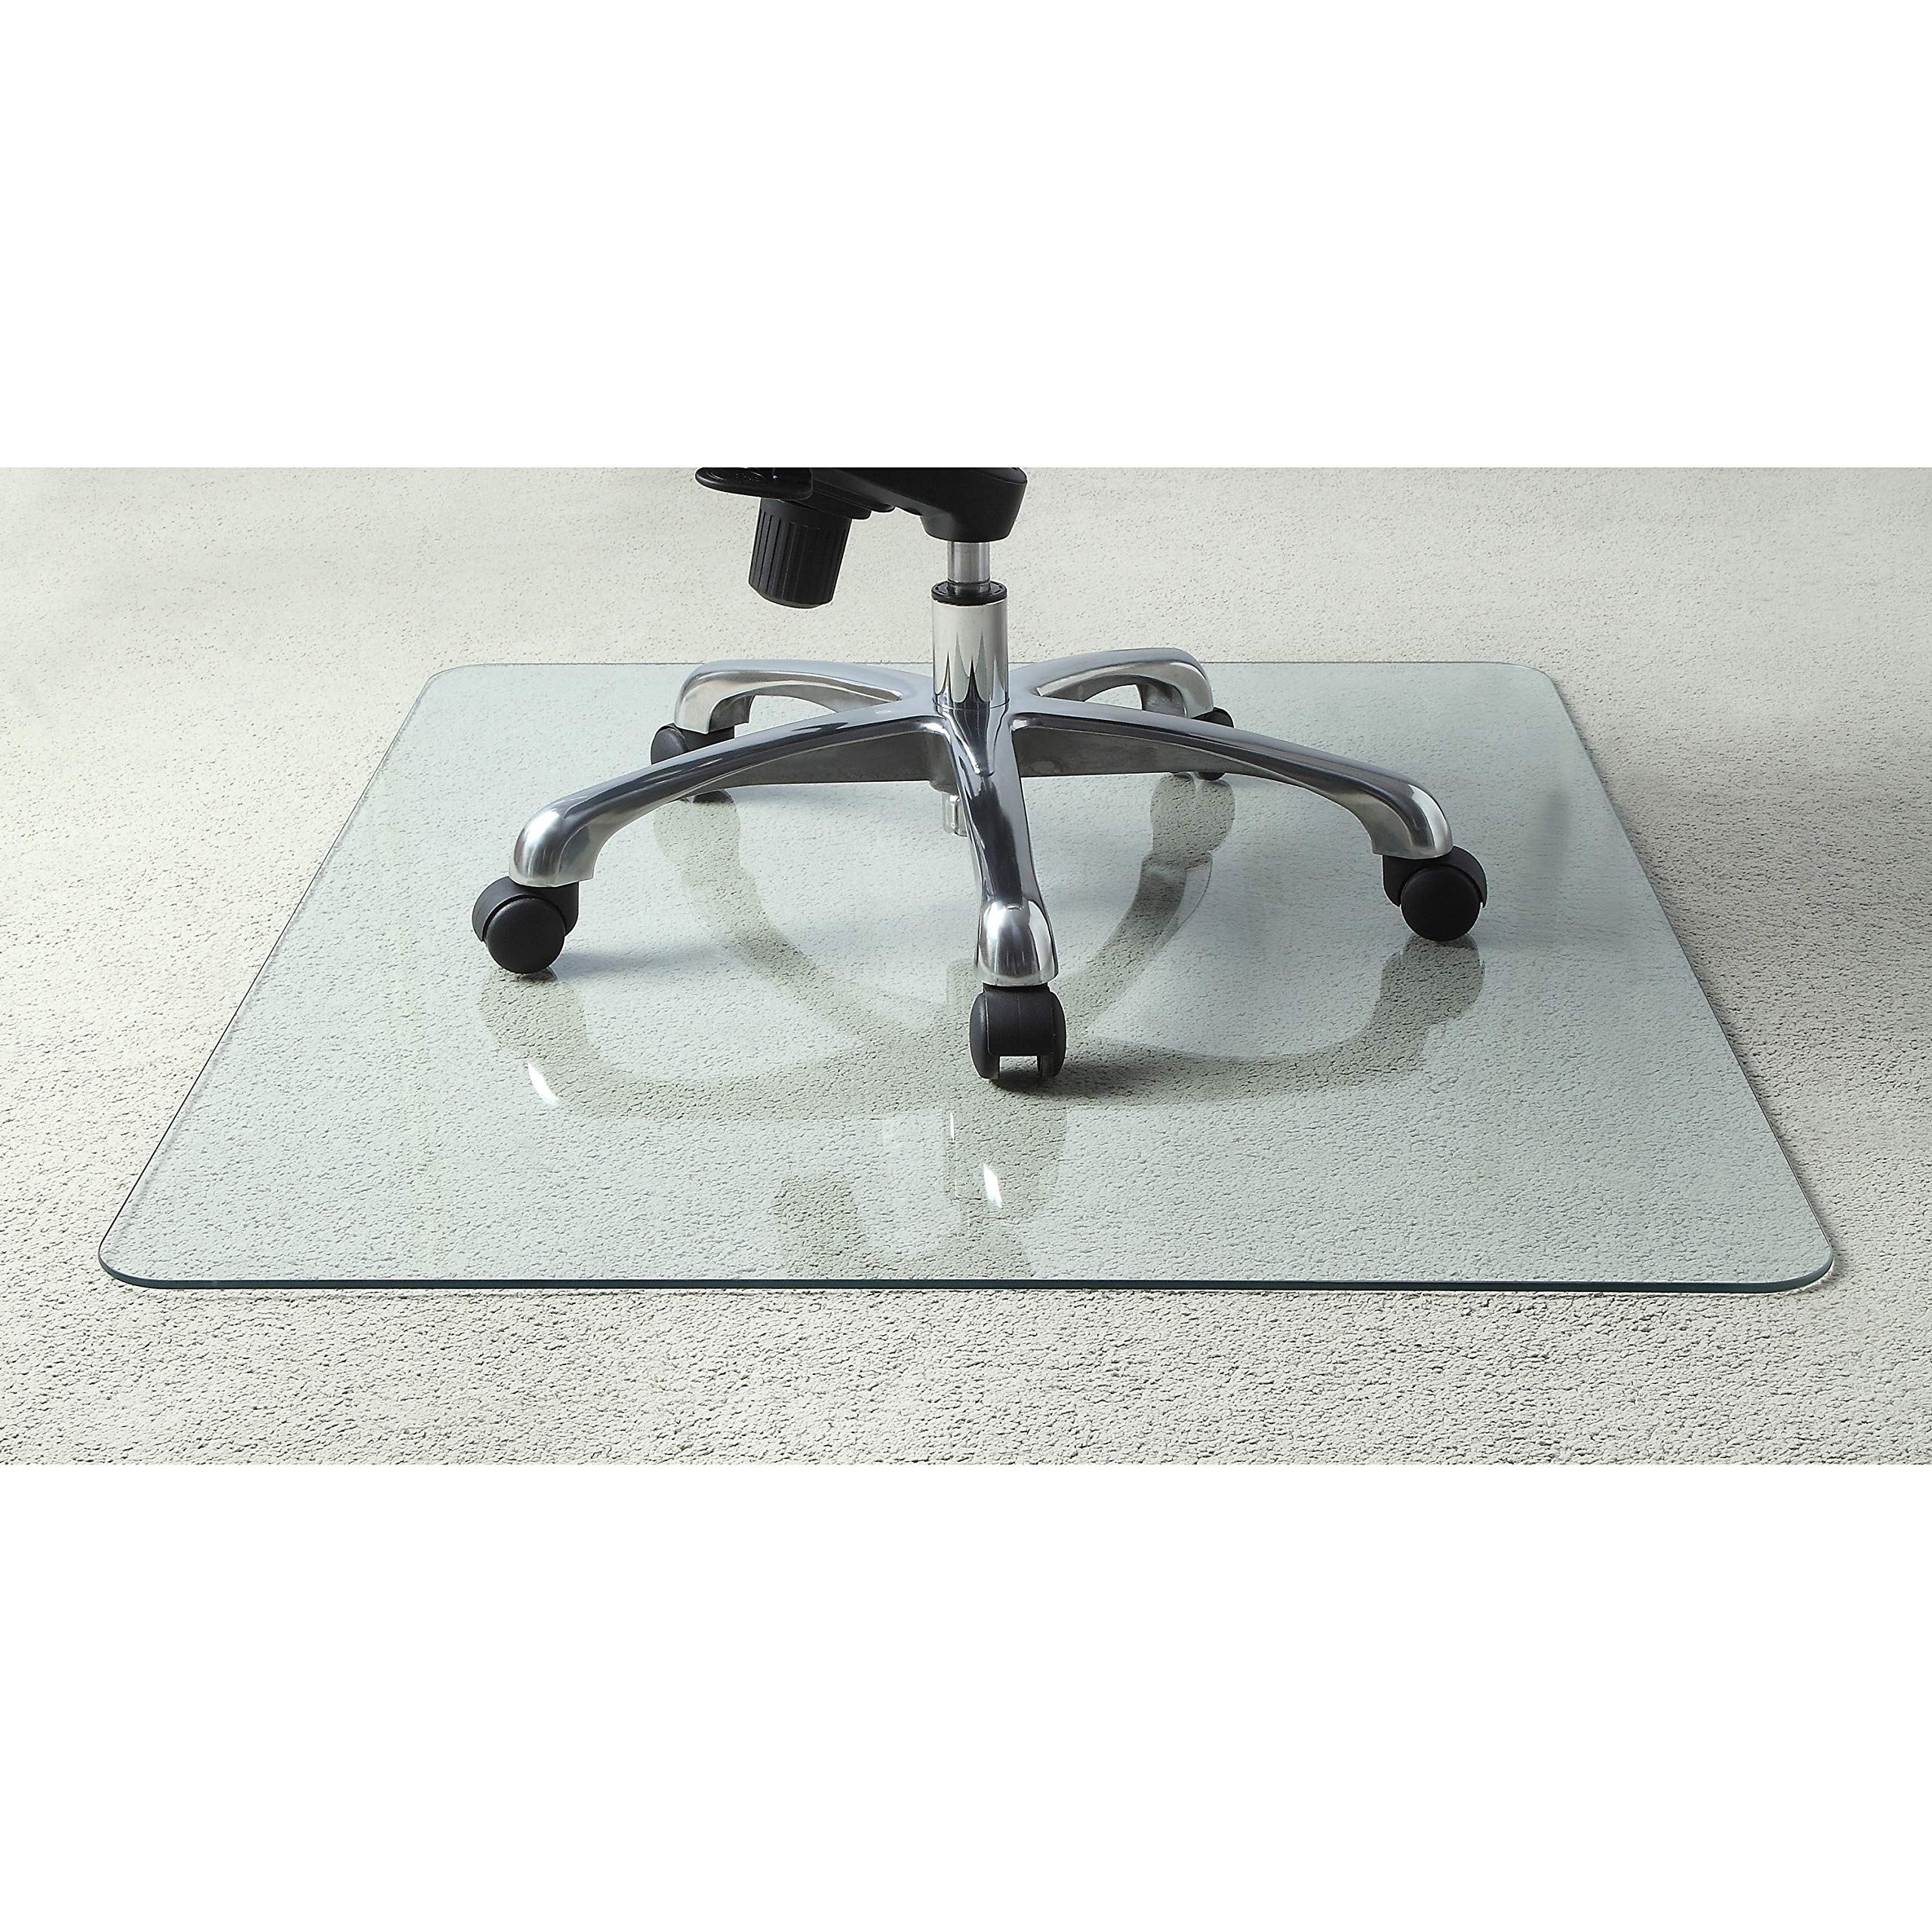 Lorell Tempered Glass Chair Mat by Lorell (Image #1)